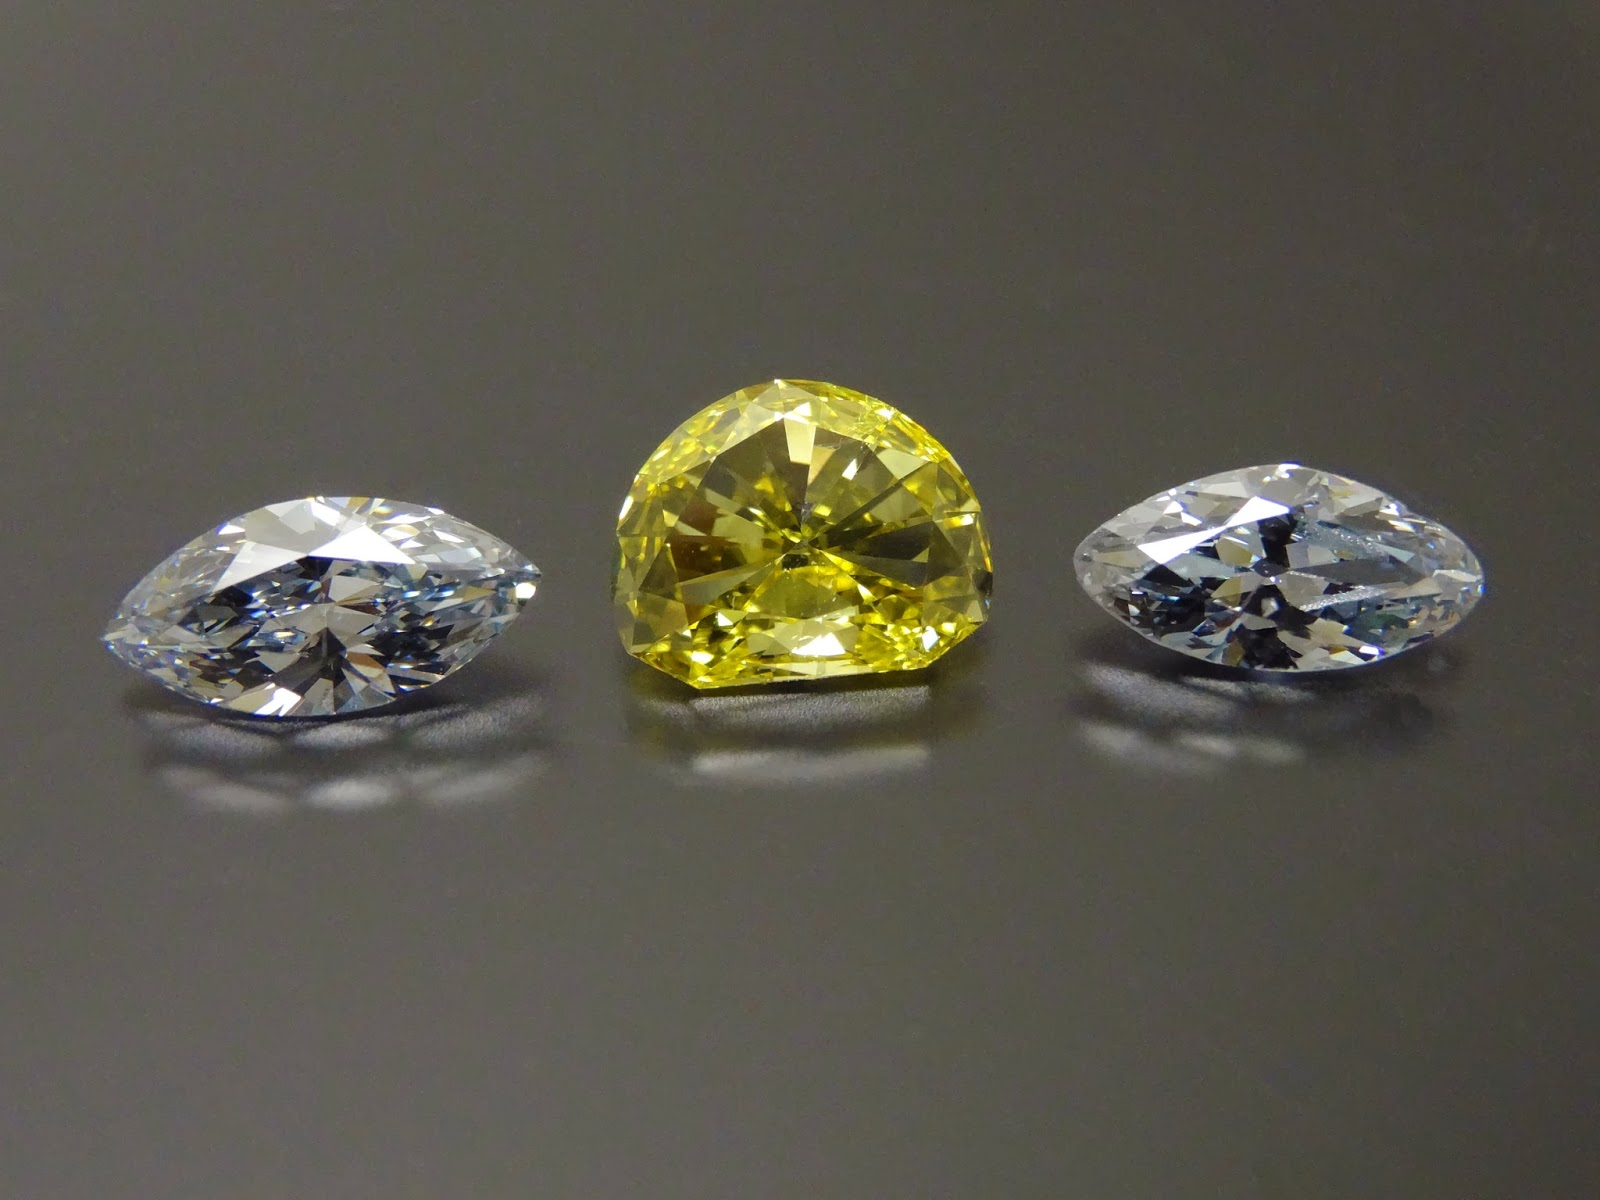 vs cushion light diamond thumb vivid faint fluorescence yellow forum cut post topic help ashoka fancy